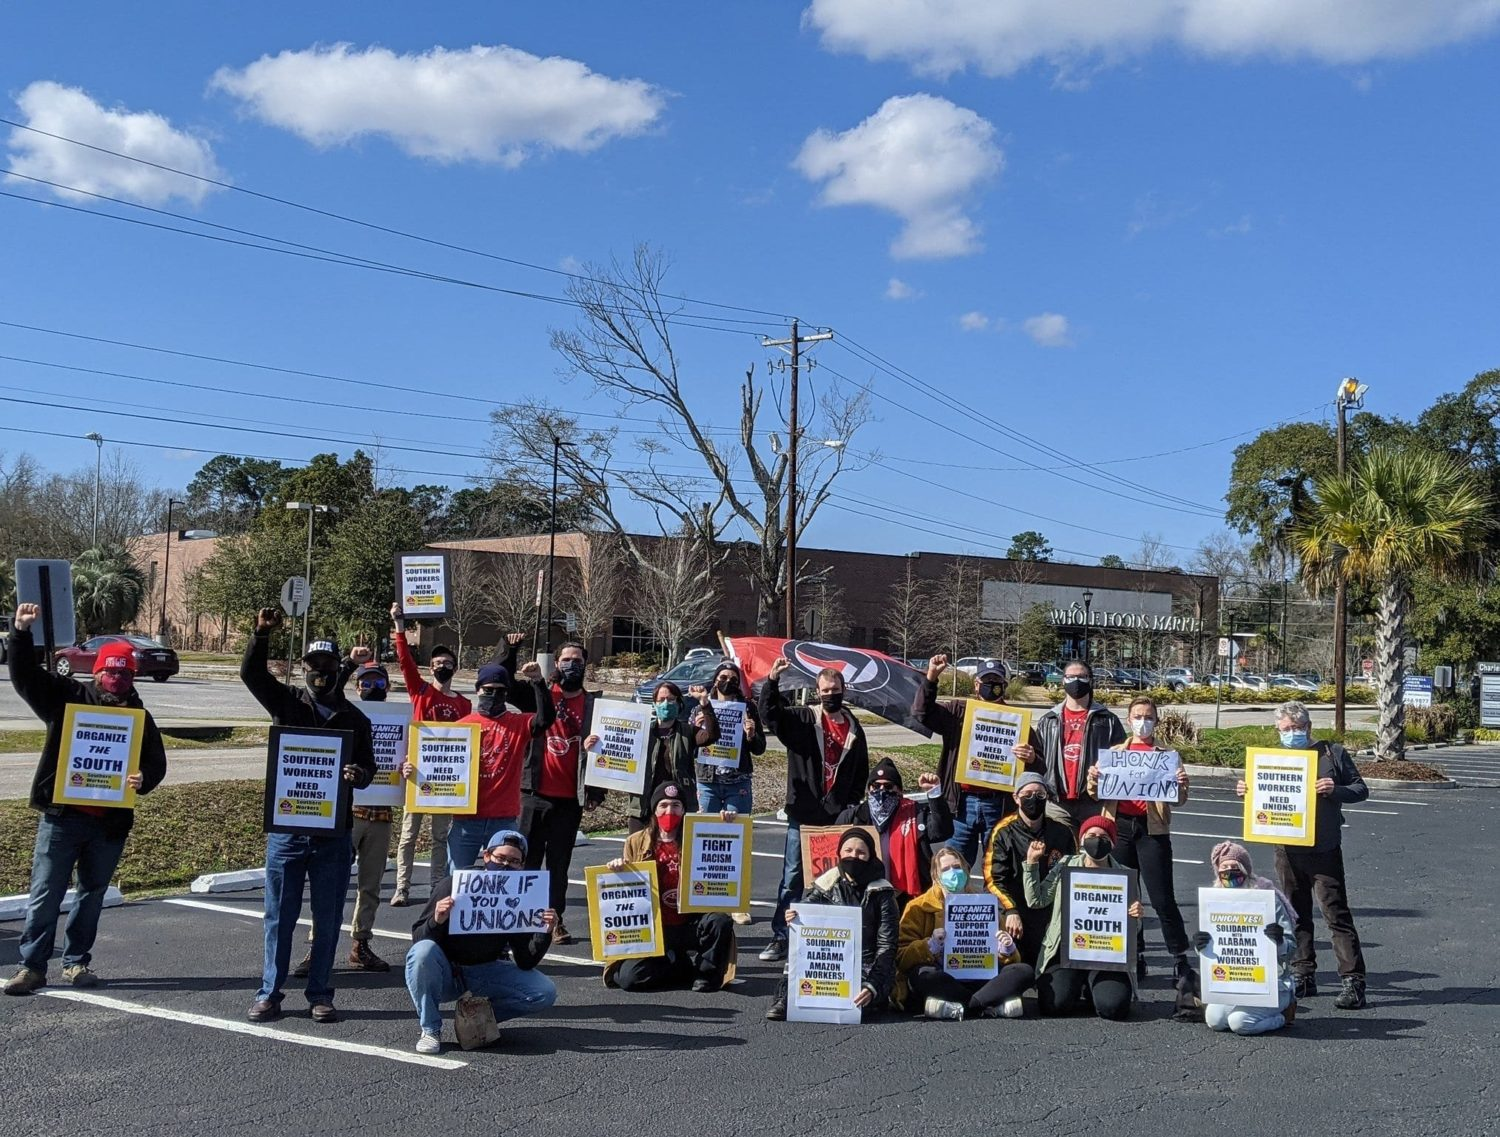 Charleston-South-Carolina-Amazon-workers-support-protest-022021-1, Black Workers Matter! Nationwide protests supporting Amazon workers in Alabama from the Bay to Harlem, National News & Views Photo Gallery